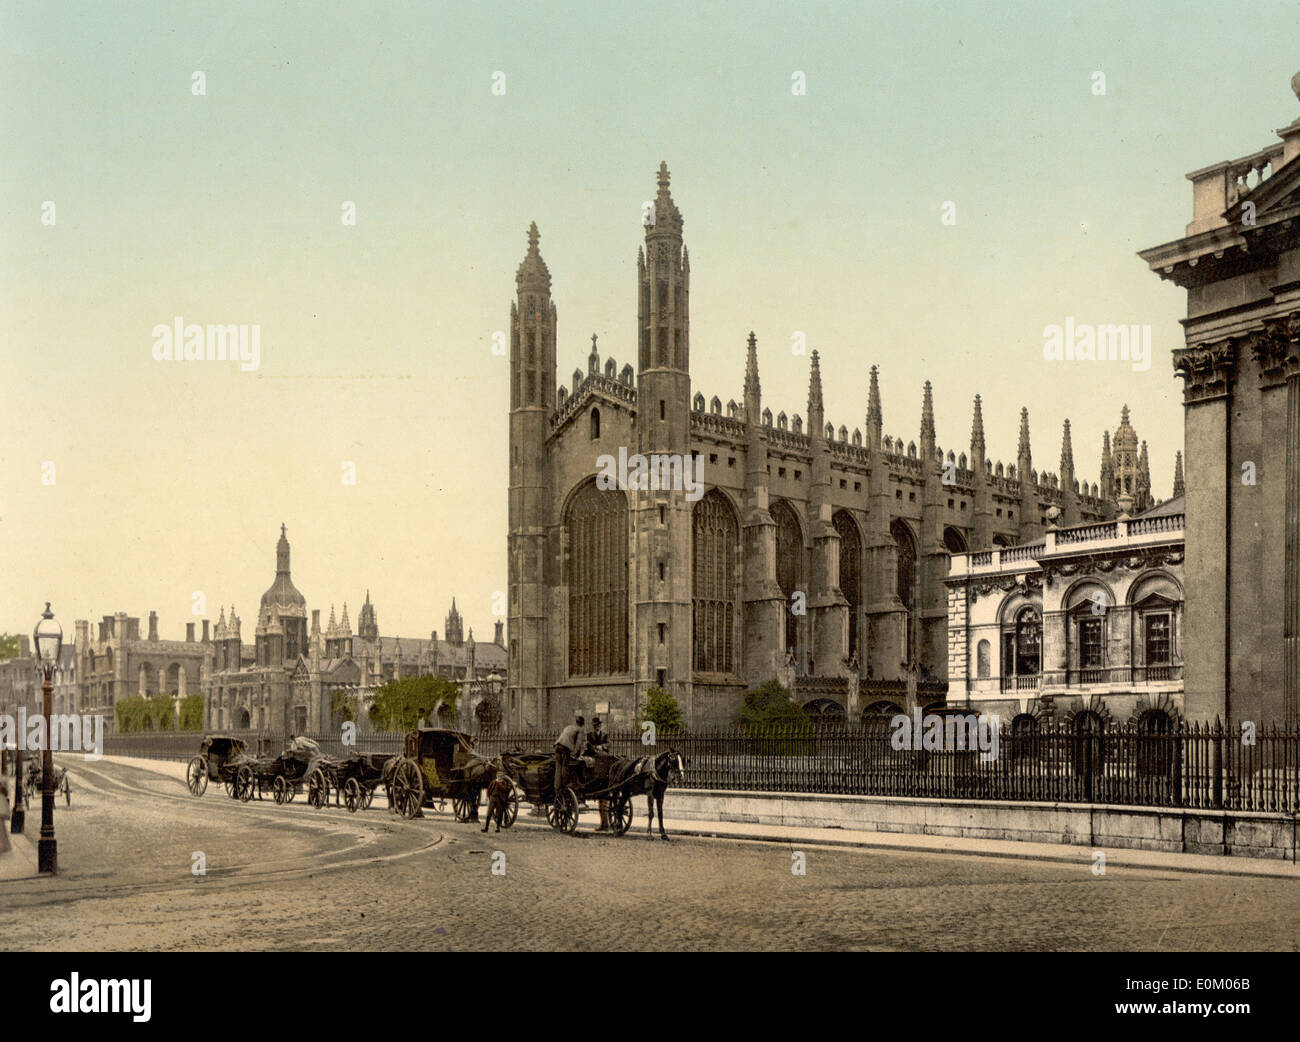 King's College, Cambridge, England - Stock Image